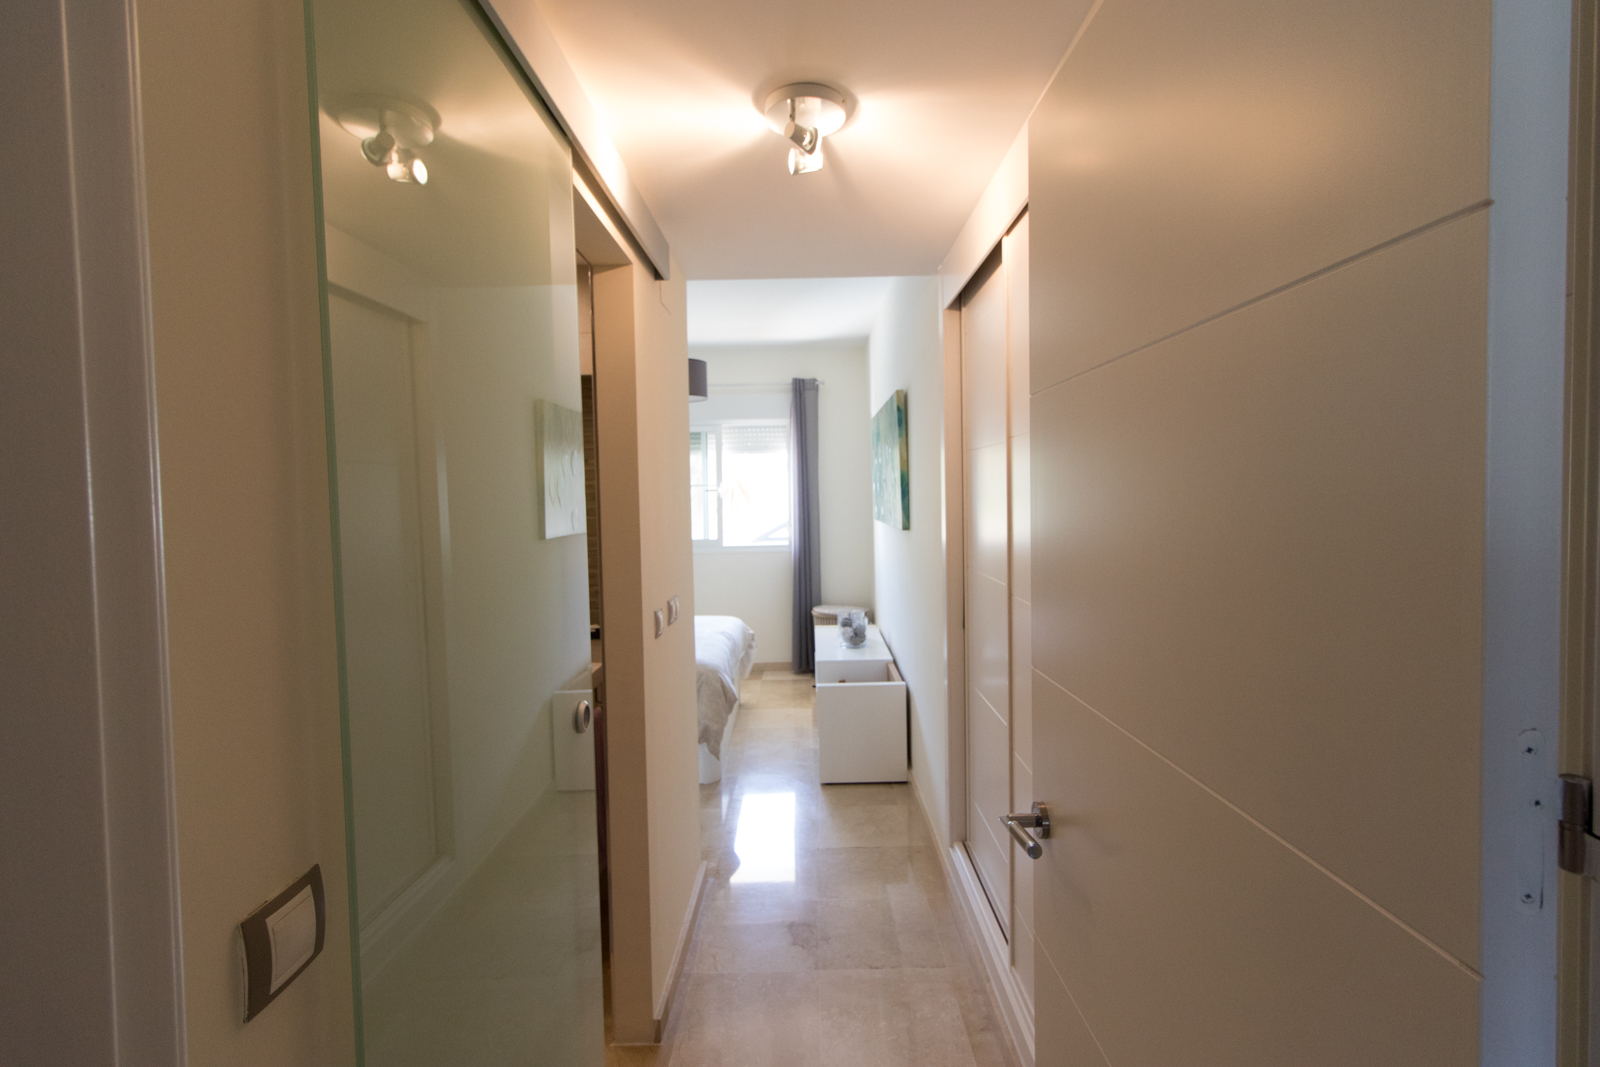 Residencial Duquesa Apartment: Entrance to Master Bedroom